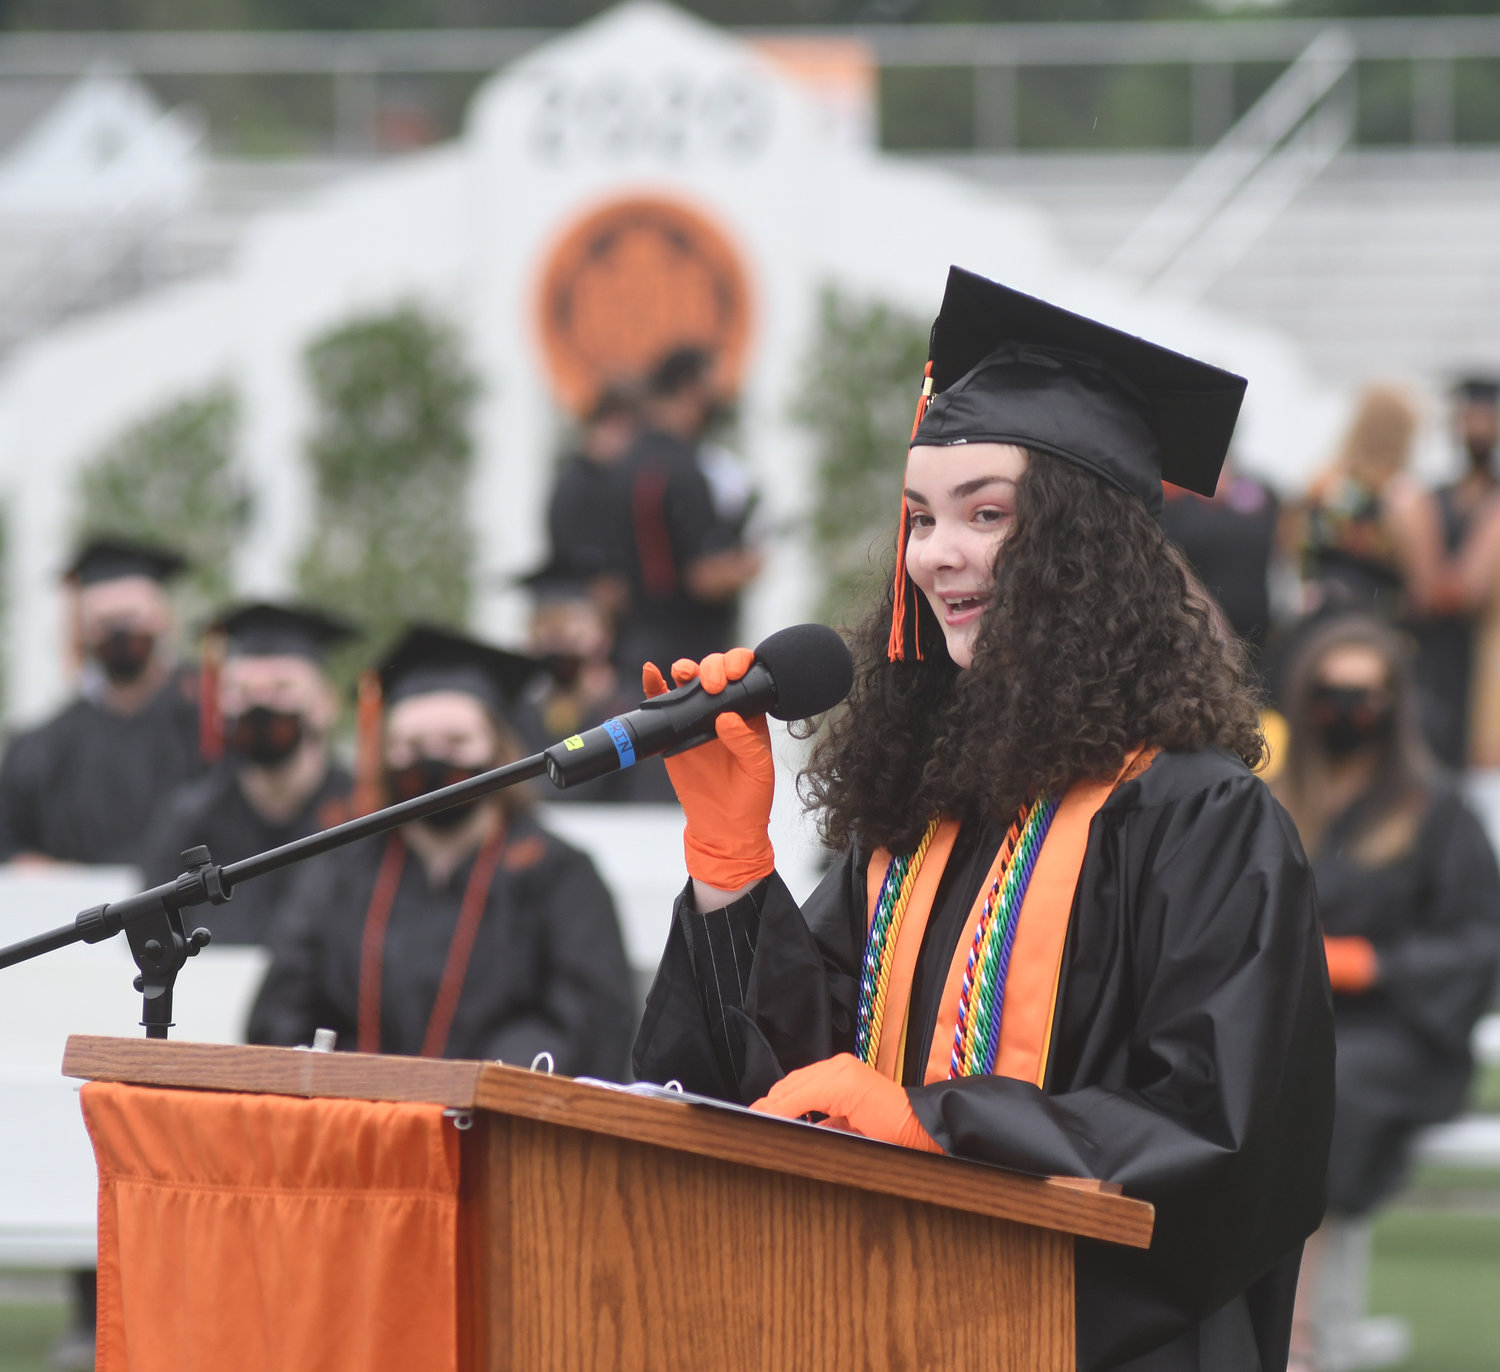 VALEDICTORIAN — Class of 2020 Valedictorian Erika Rizzo shares her message with fellow graduates during the first of six mini-commencement ceremonies on Saturday at Rome Free Academy stadium.